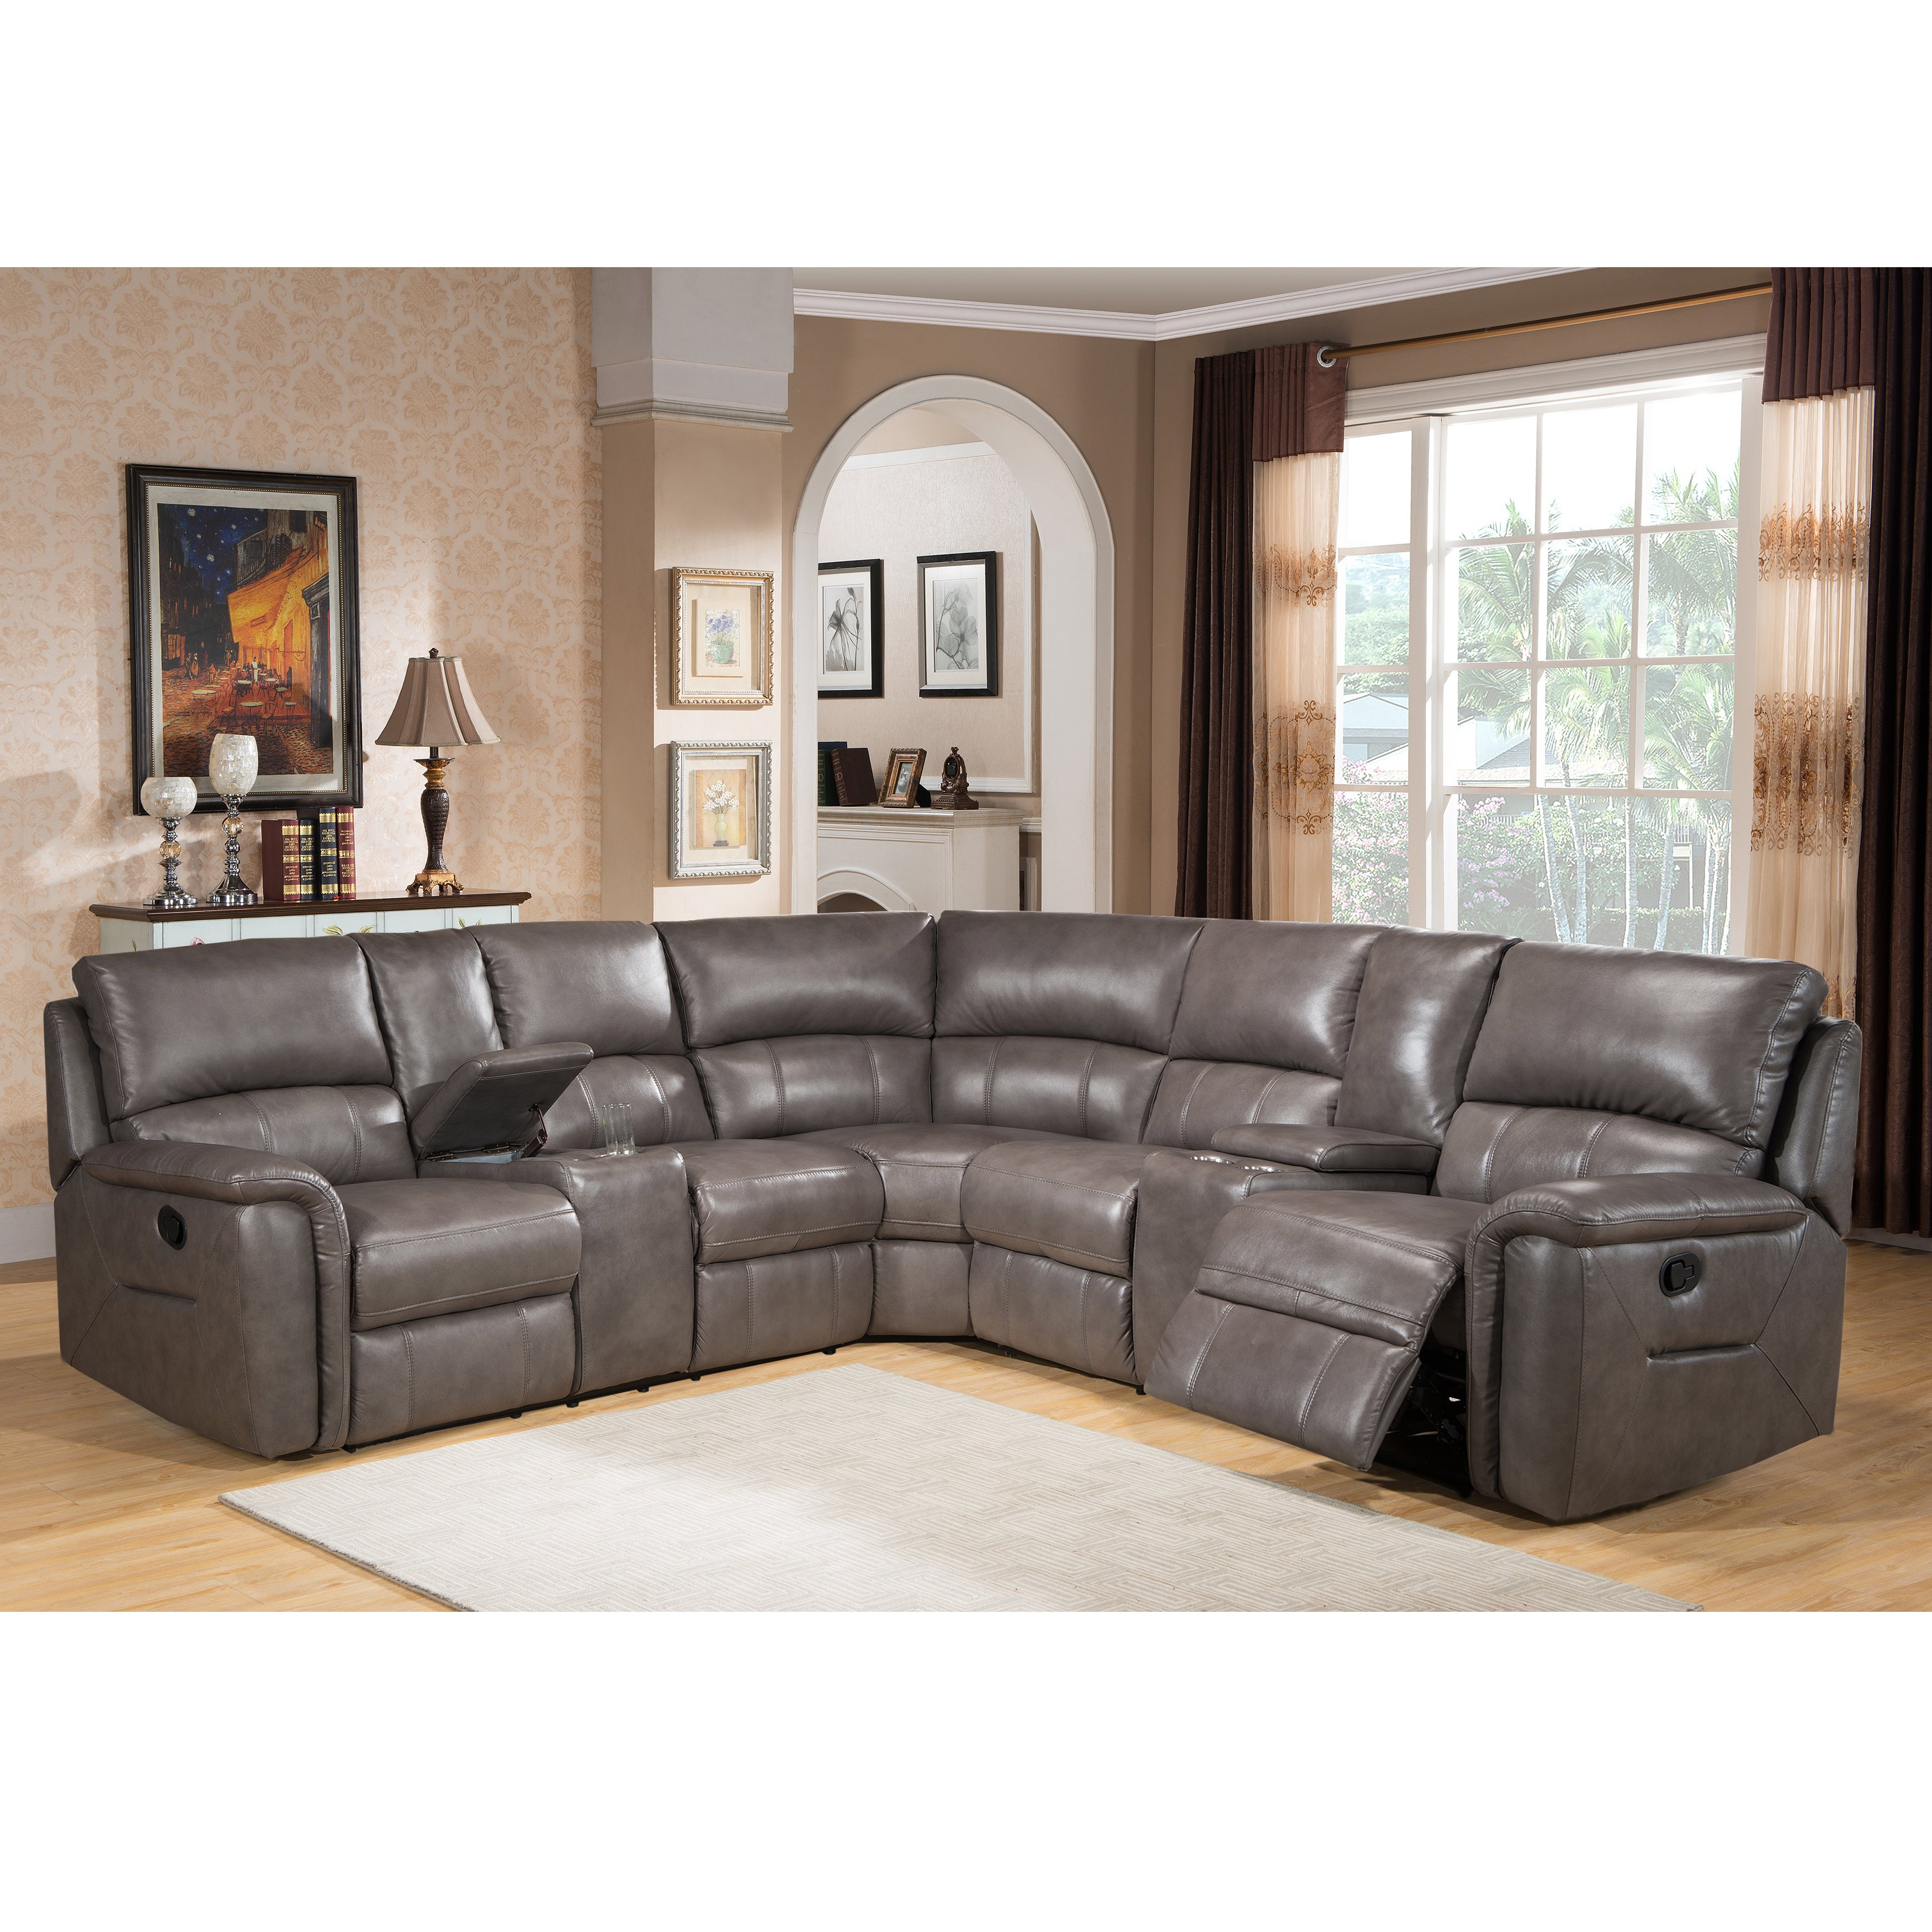 Well Known Travis Cognac Leather 6 Piece Power Reclining Sectionals With Power Headrest & Usb Throughout Unique Reclining Small Reclining Sectional In Reclining Sectional (View 18 of 20)